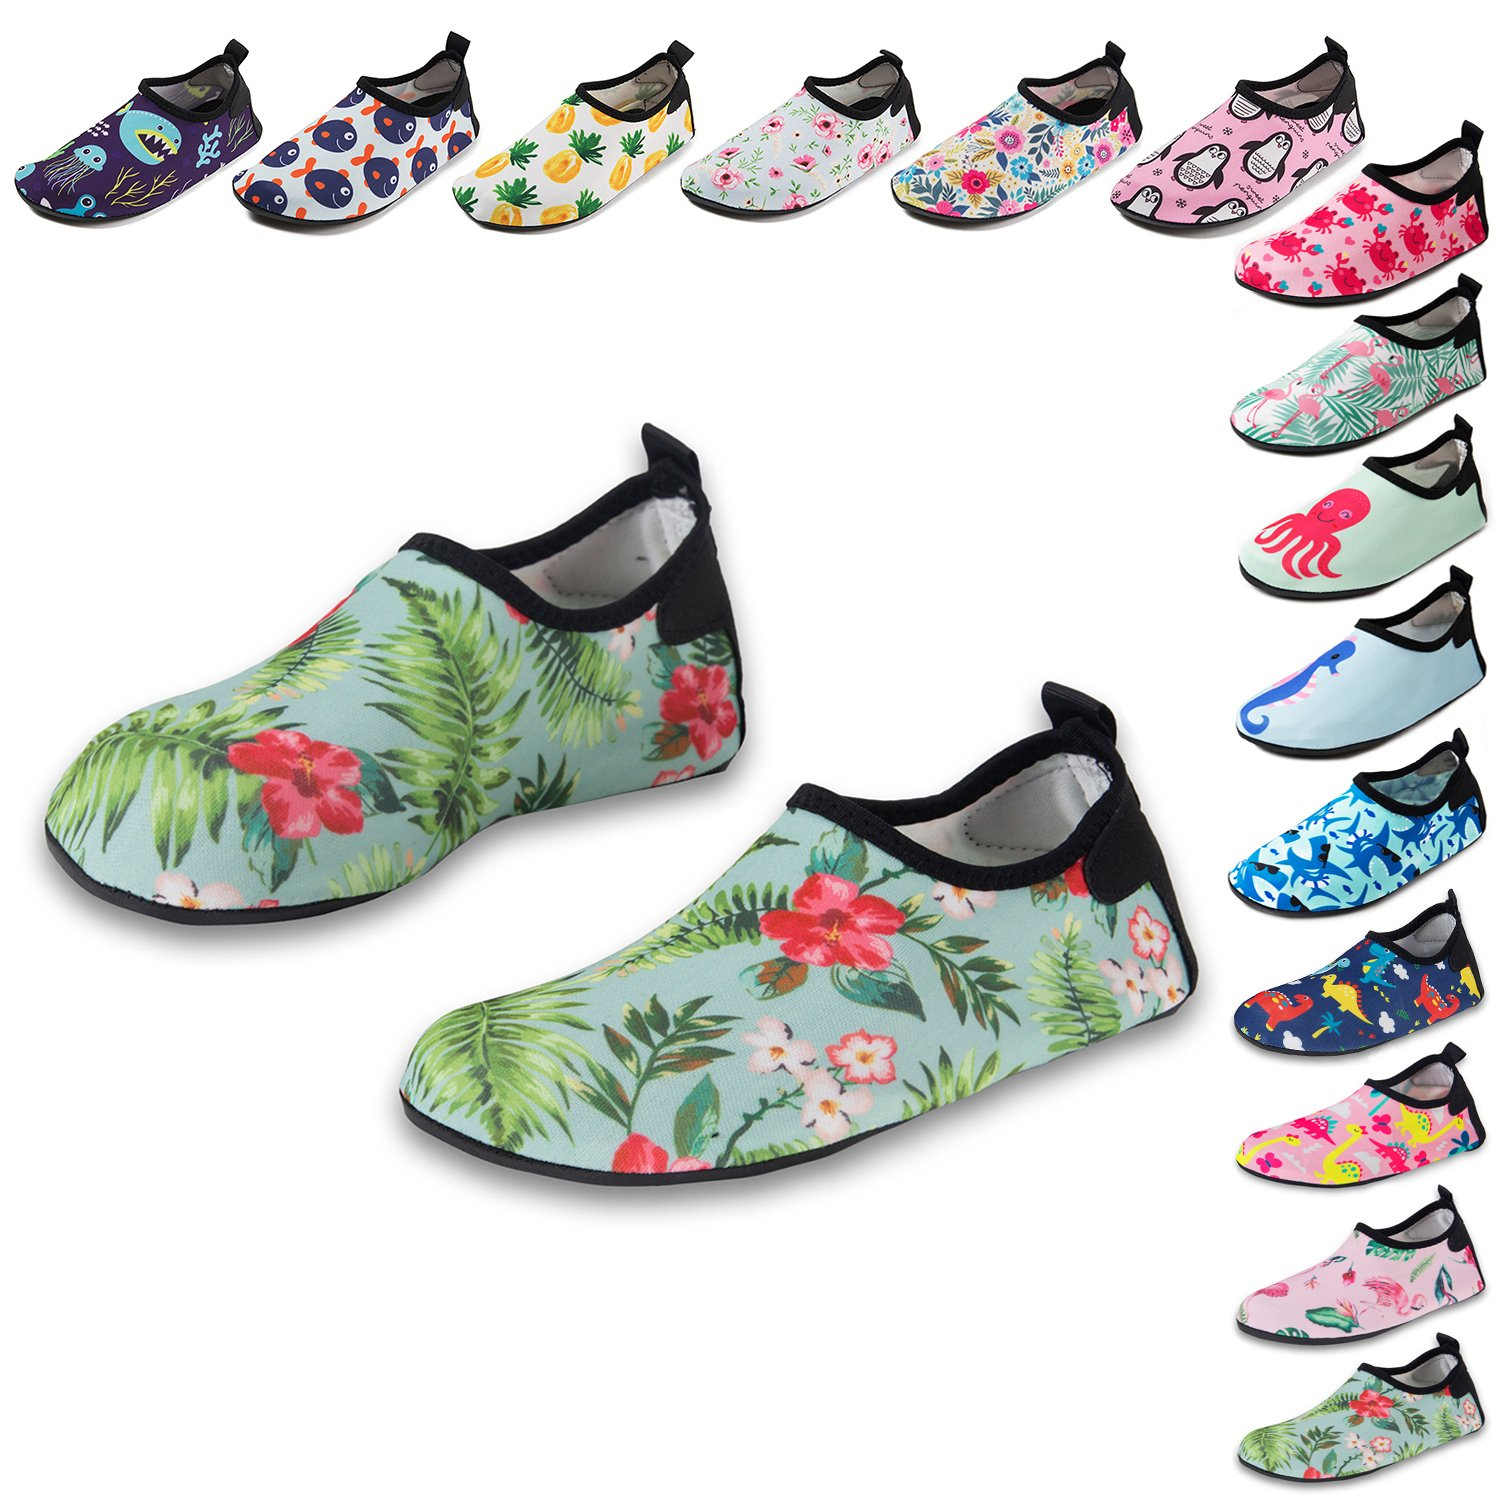 CiiaoLeoo Kids Water Shoes Quick-Dry Swim Barefoot Aqua Socks Shoes for Beach Pool Surfing Dance (8-8.5 M US Toddler, Tropical-Floral)